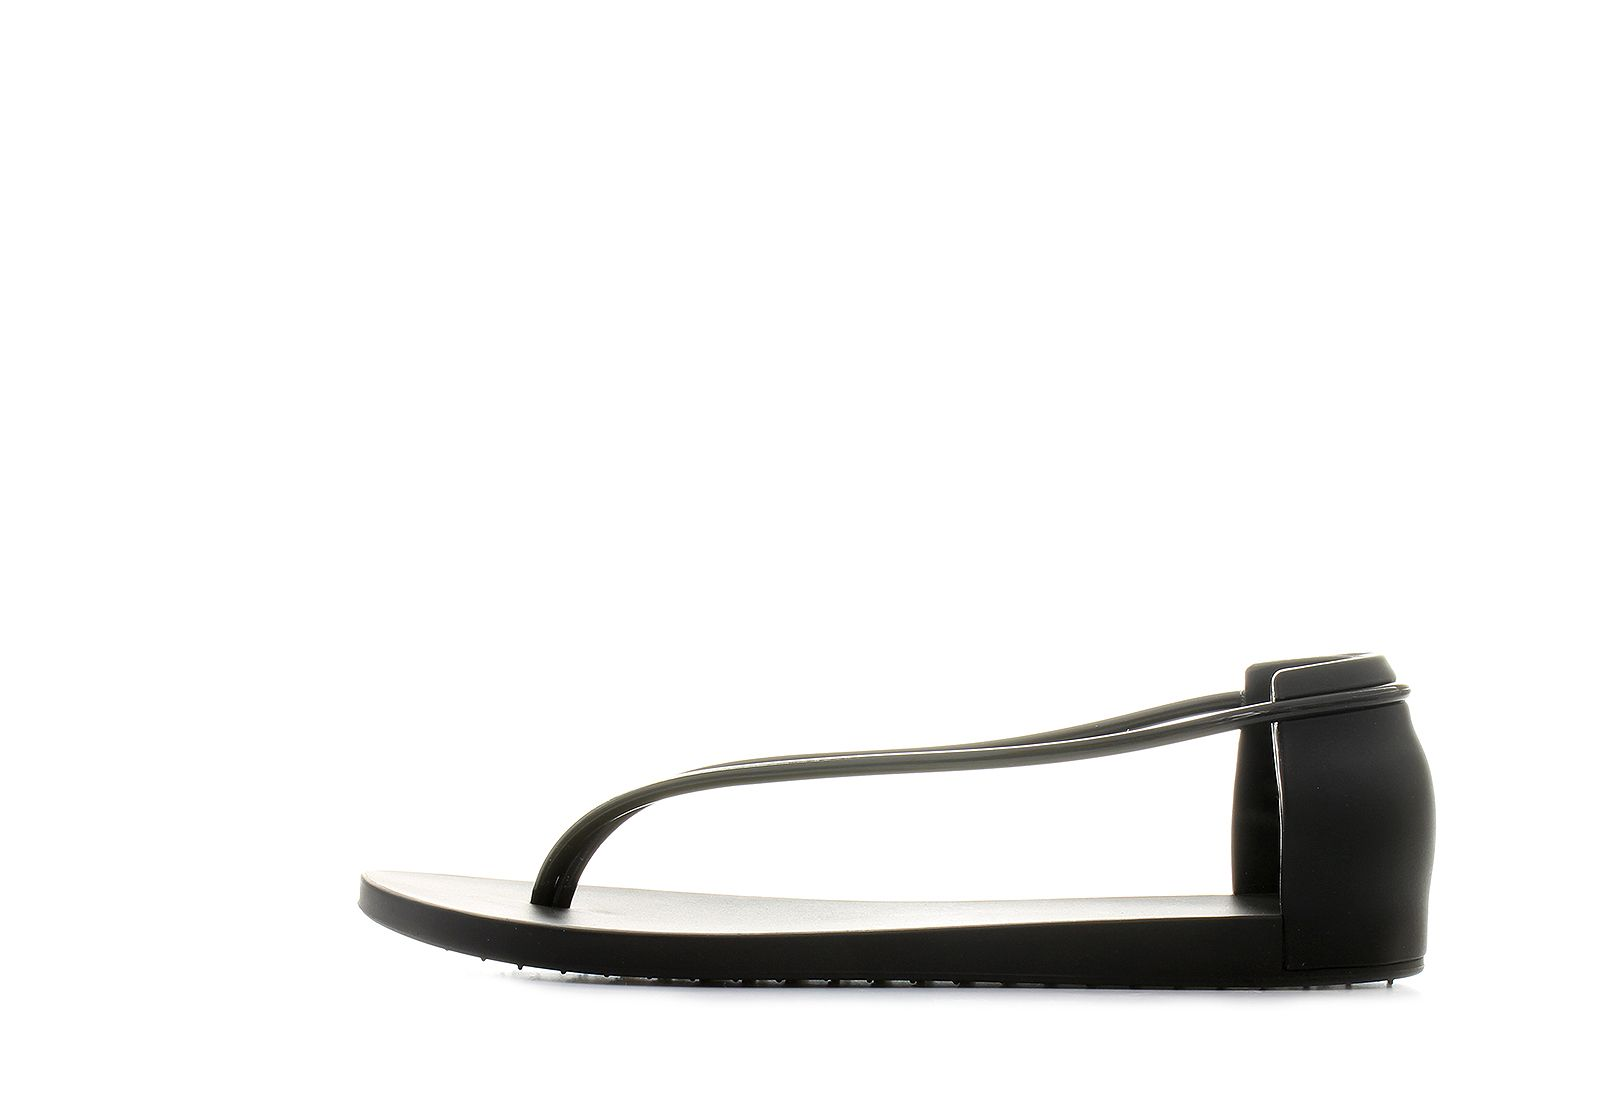 0abe4e7035f Ipanema Sandals - Philippe Starck Thing N - 82047-20880 - Online ...